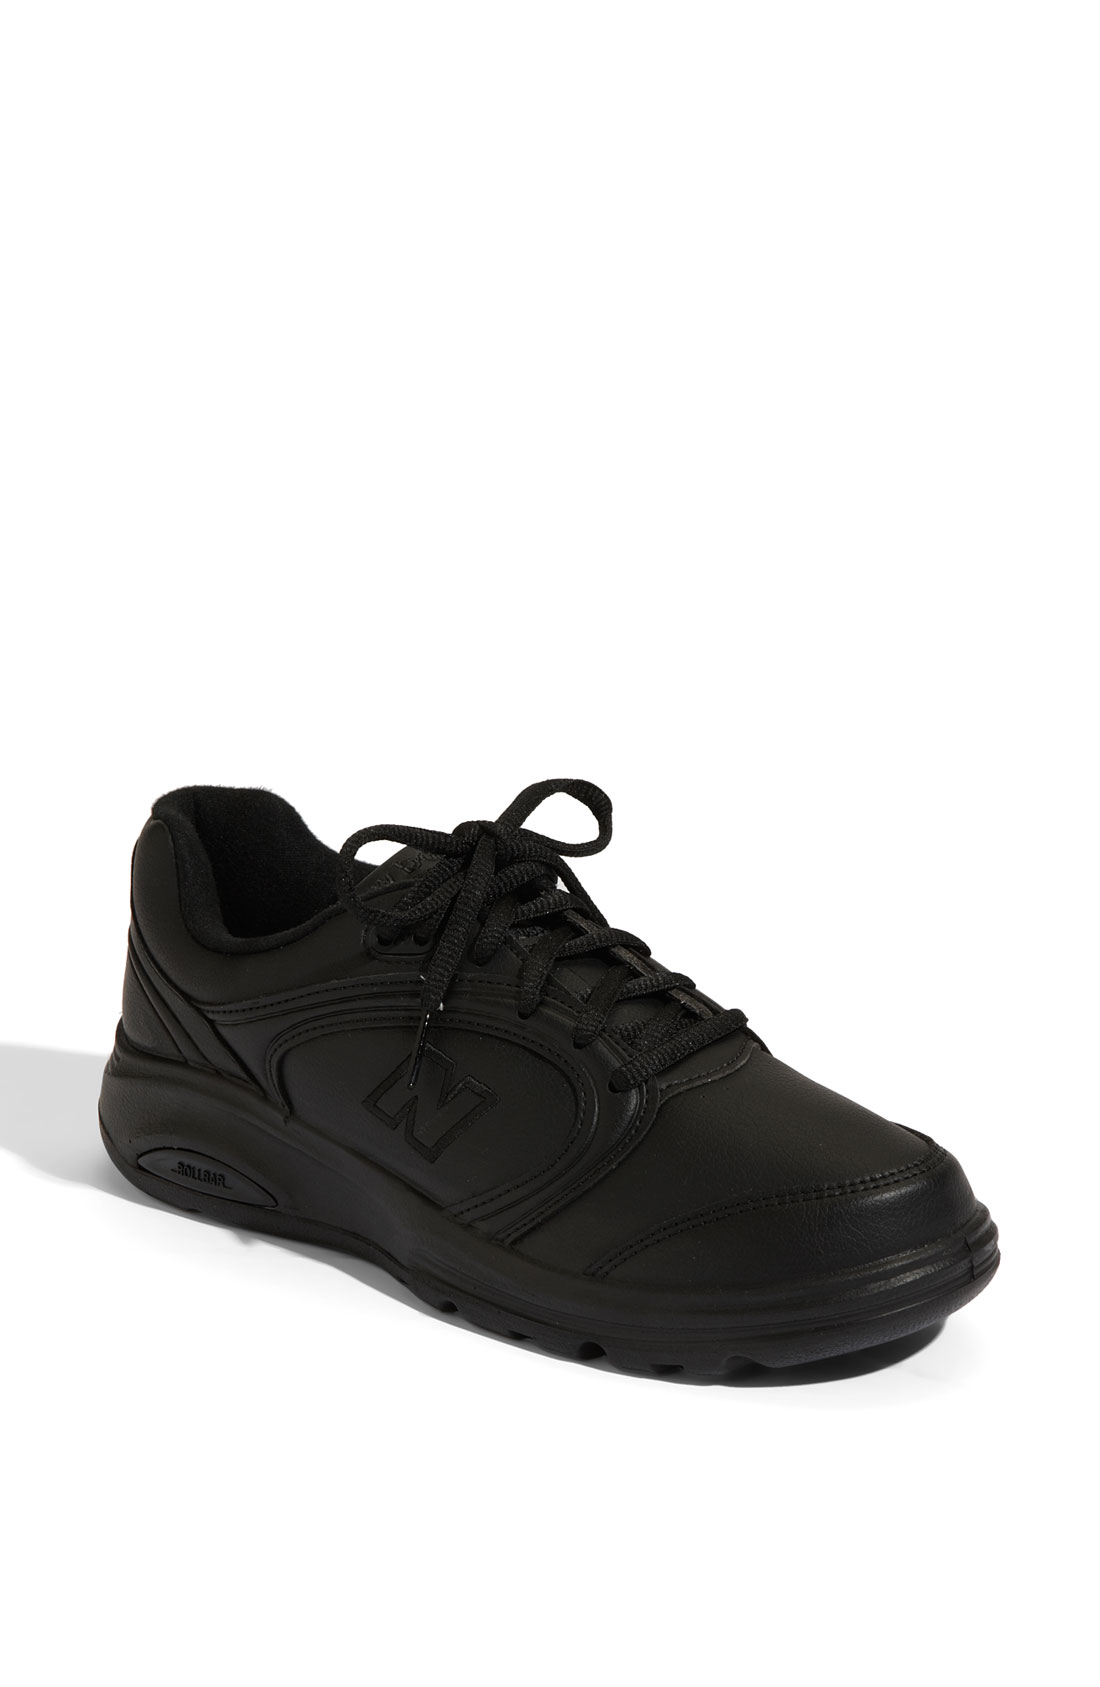 new balance 812 walking shoe in black lyst